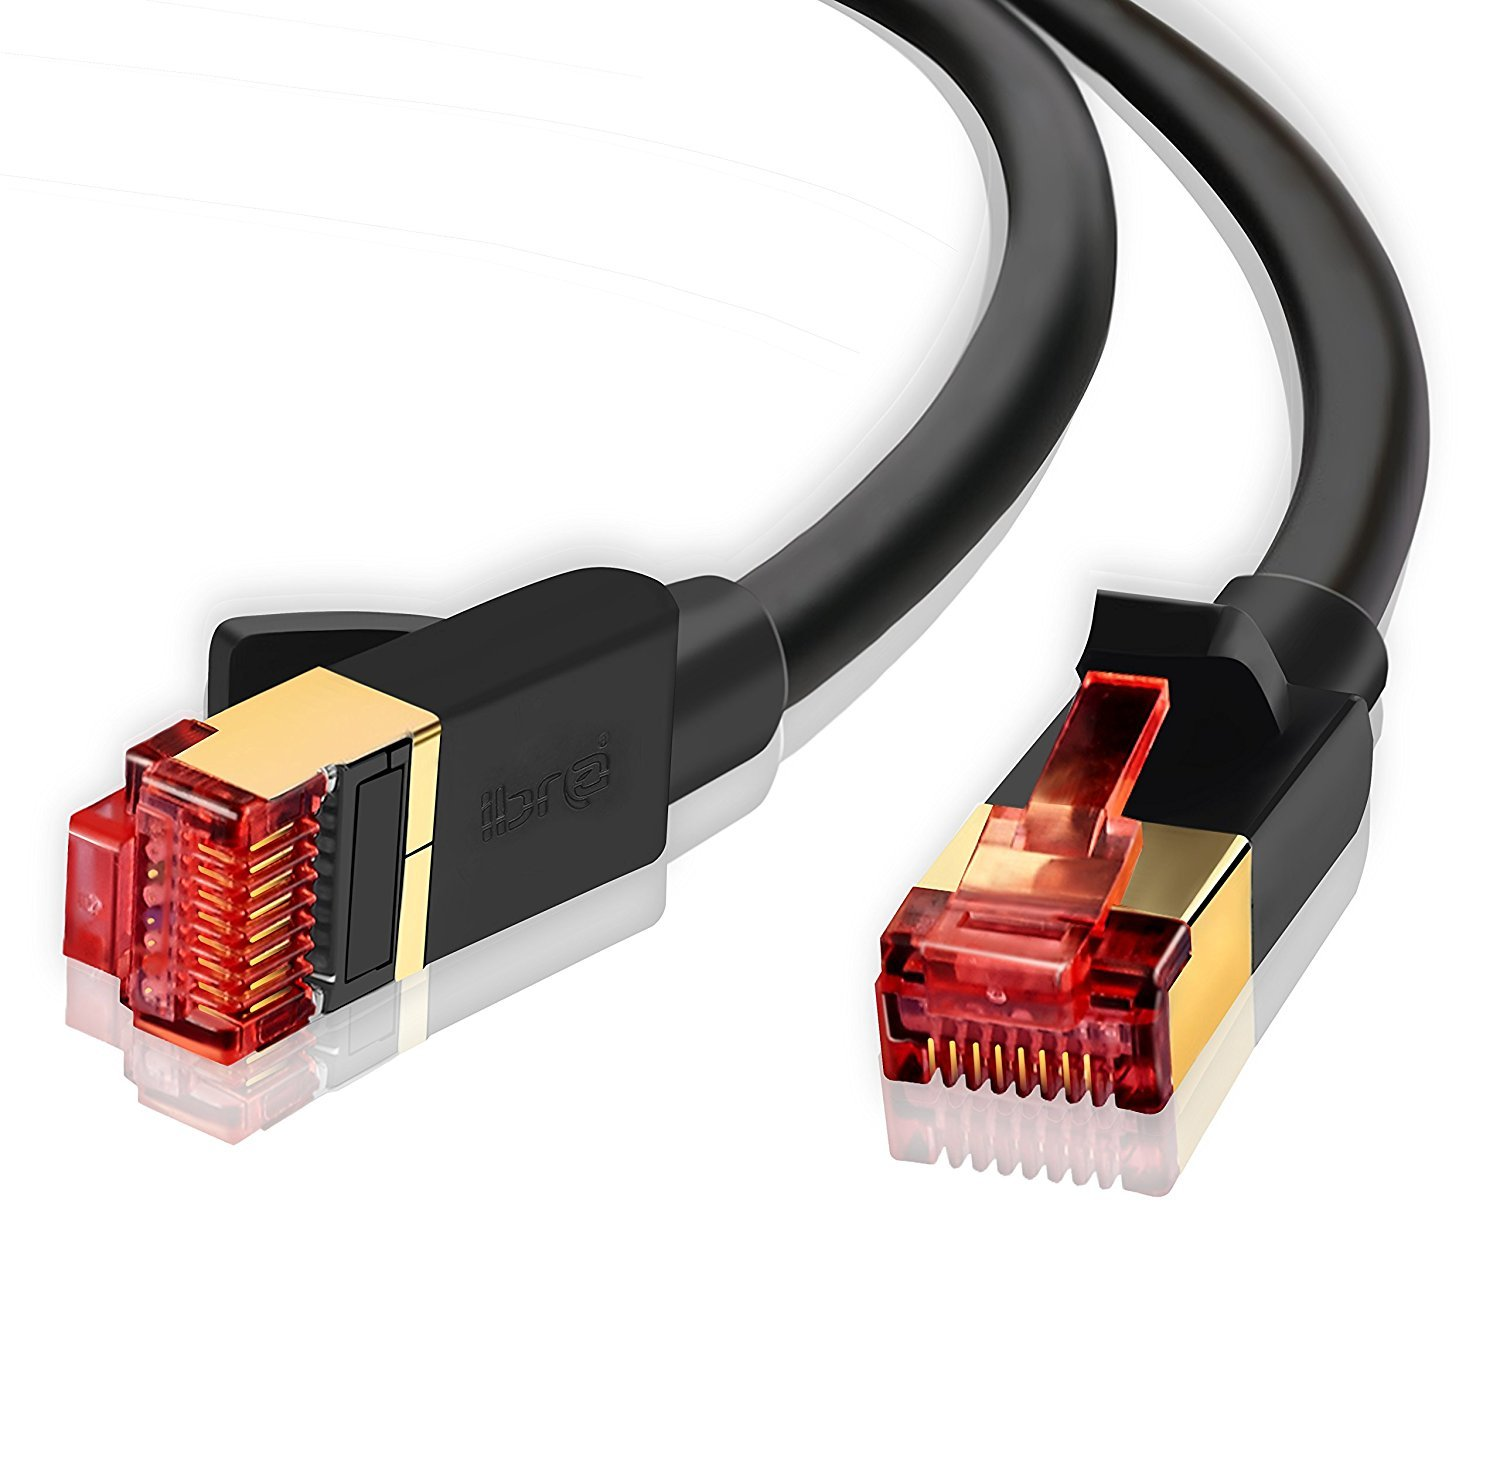 Ibra Ethernet Cable Cat7 Networking Cord Patch Rj45 10 Home Work Wiring Diagram For Ether In Addition Wall Jack Gigabit 600mhz Lan Wire Stp Modem Router Pc Mac Laptop Ps2 Ps3 Ps4 Xbox